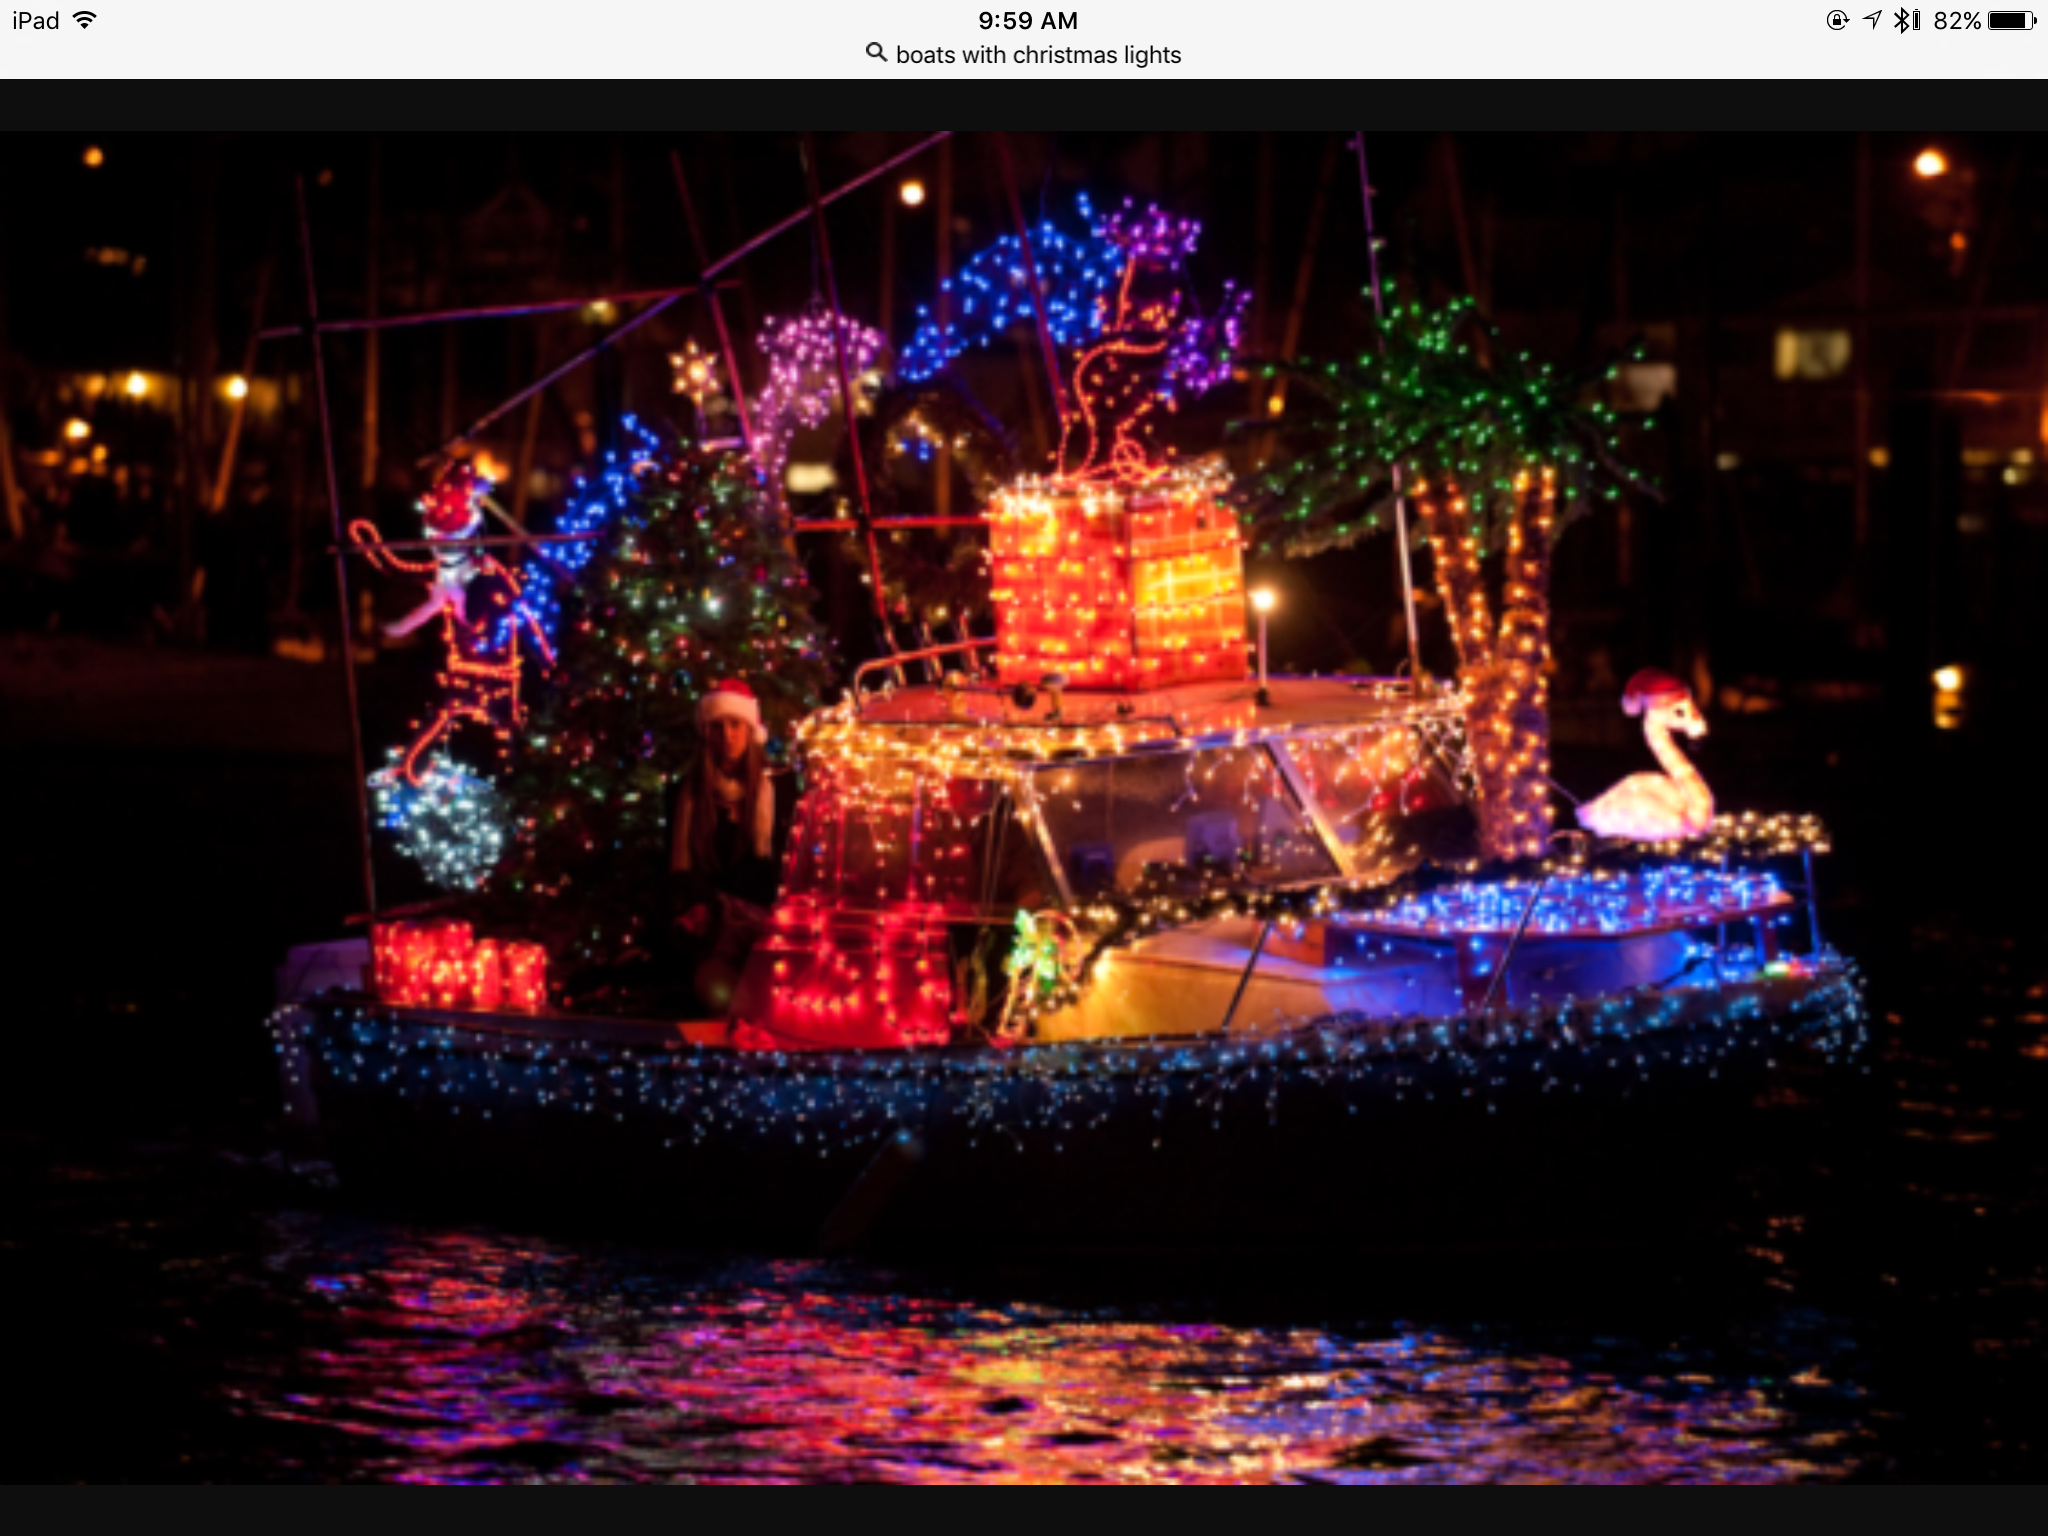 Christmas Boat Decorations.Pin By Sandele1 On Christmas Lights On Boats No Pin Limits